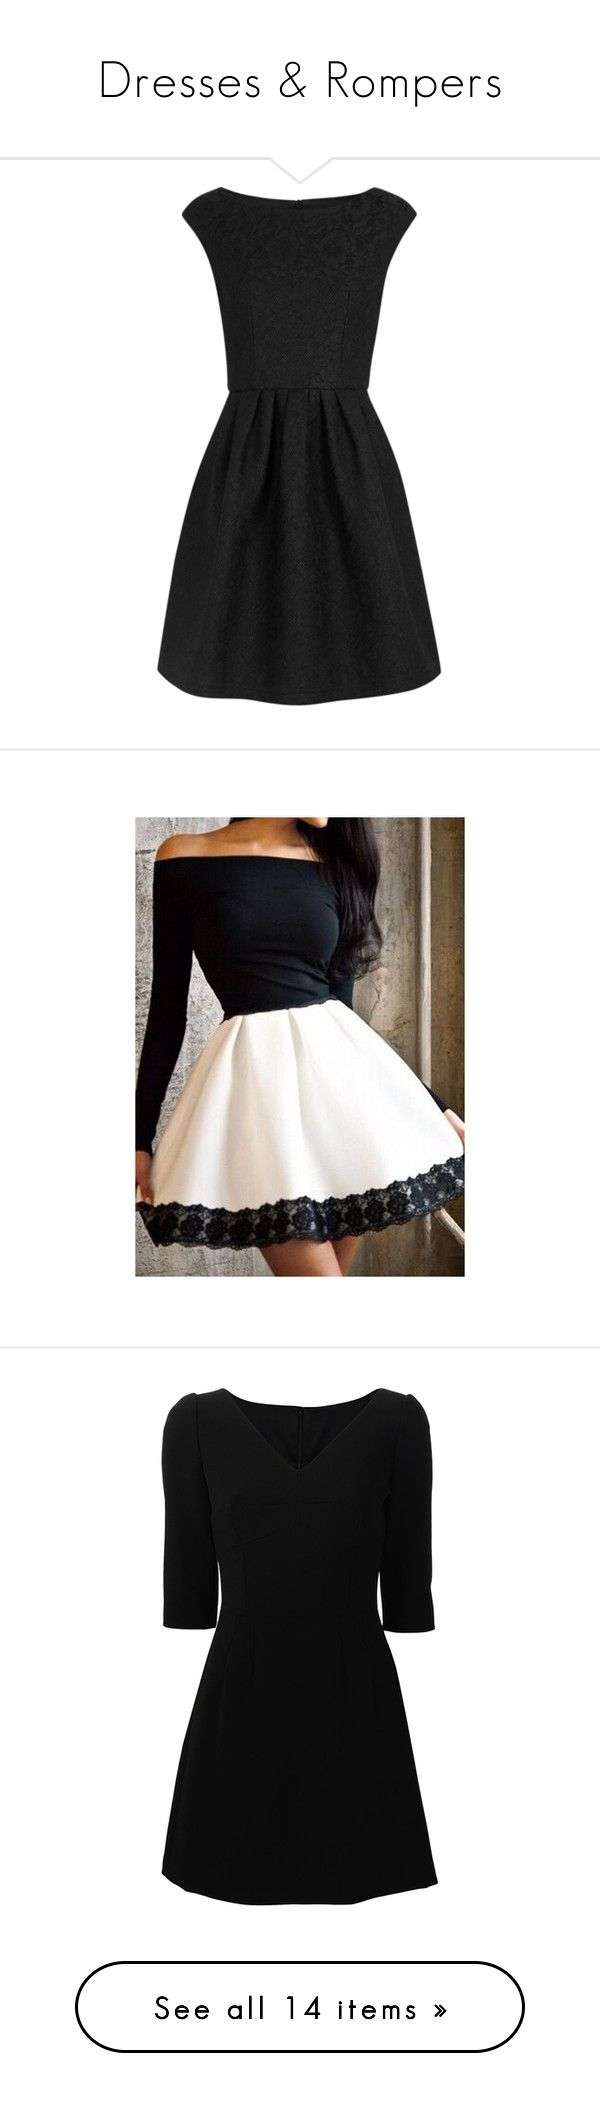 """""""Dresses & Rompers"""" by melissaxox123 on Polyvore featuring dresses, black circle skirt, black skater skirt, lace dress, black flared skirt, flare dress, vestidos, white, lace mini dress and long sleeve lace dress"""